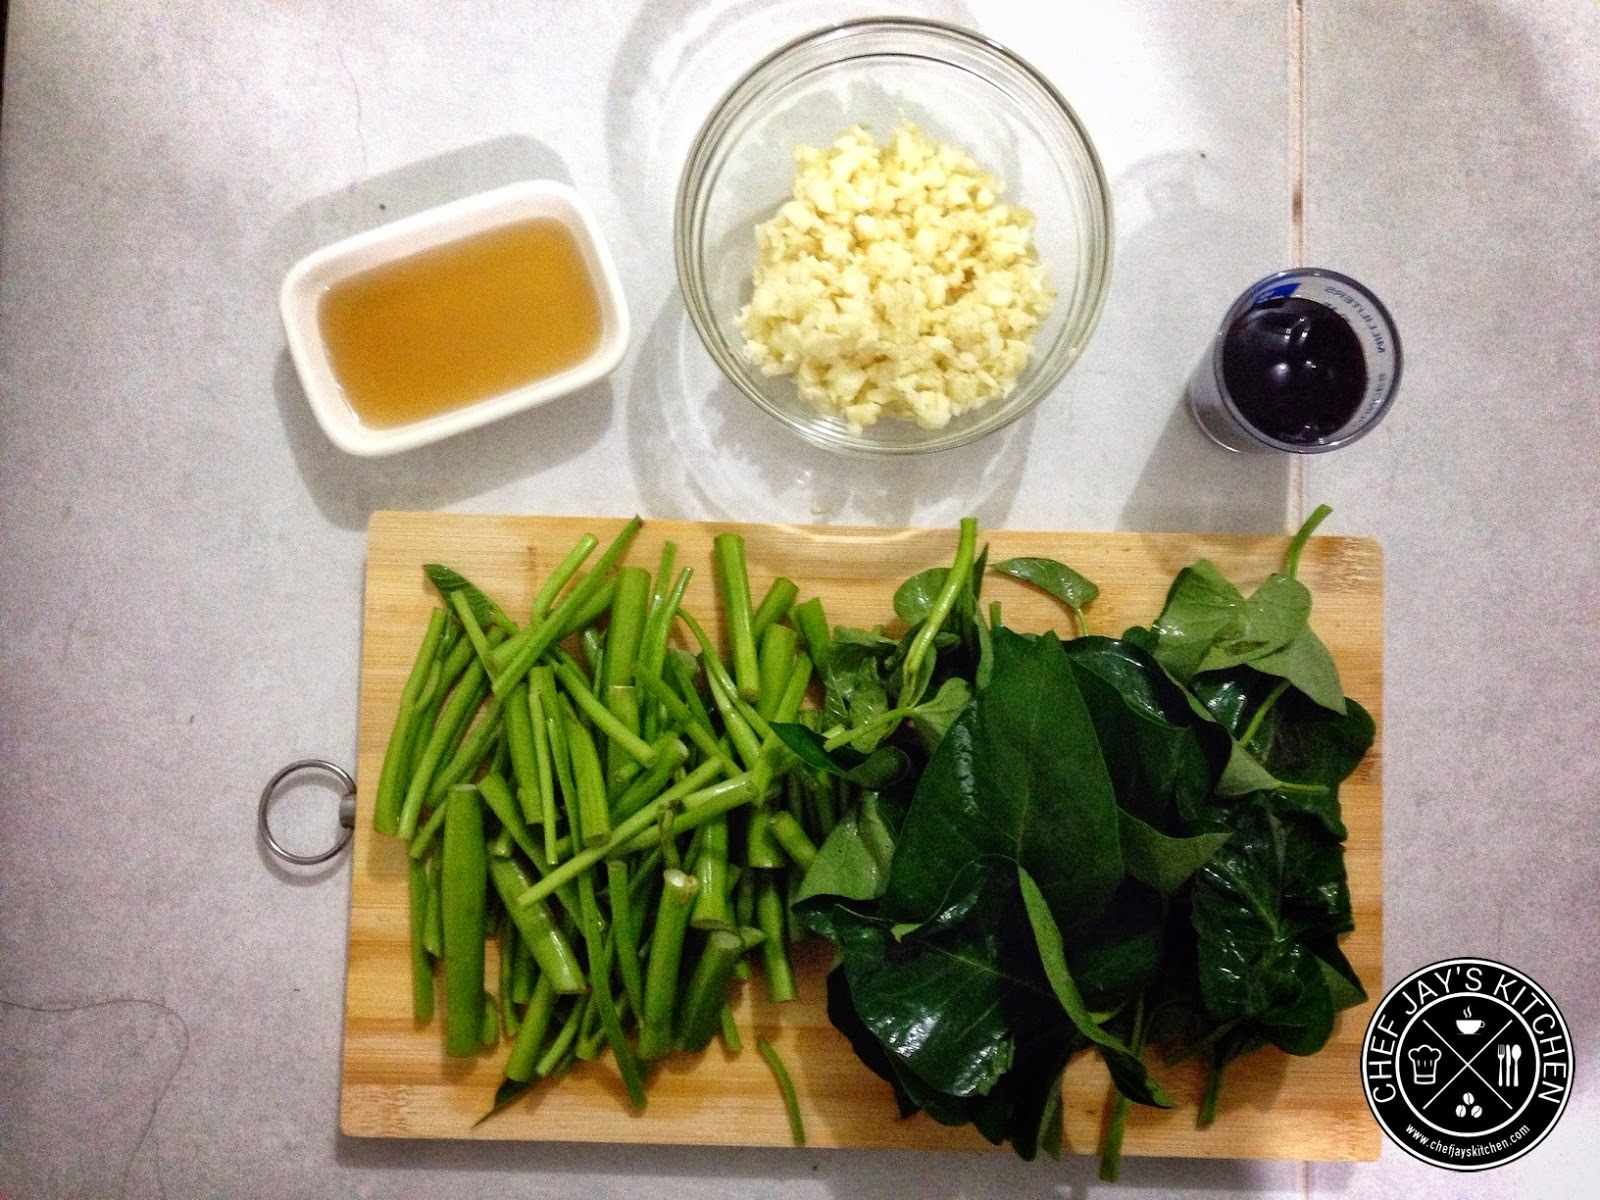 Try This Simple, Delicious Kangkong (Water Spinach) and Garlic Recipe